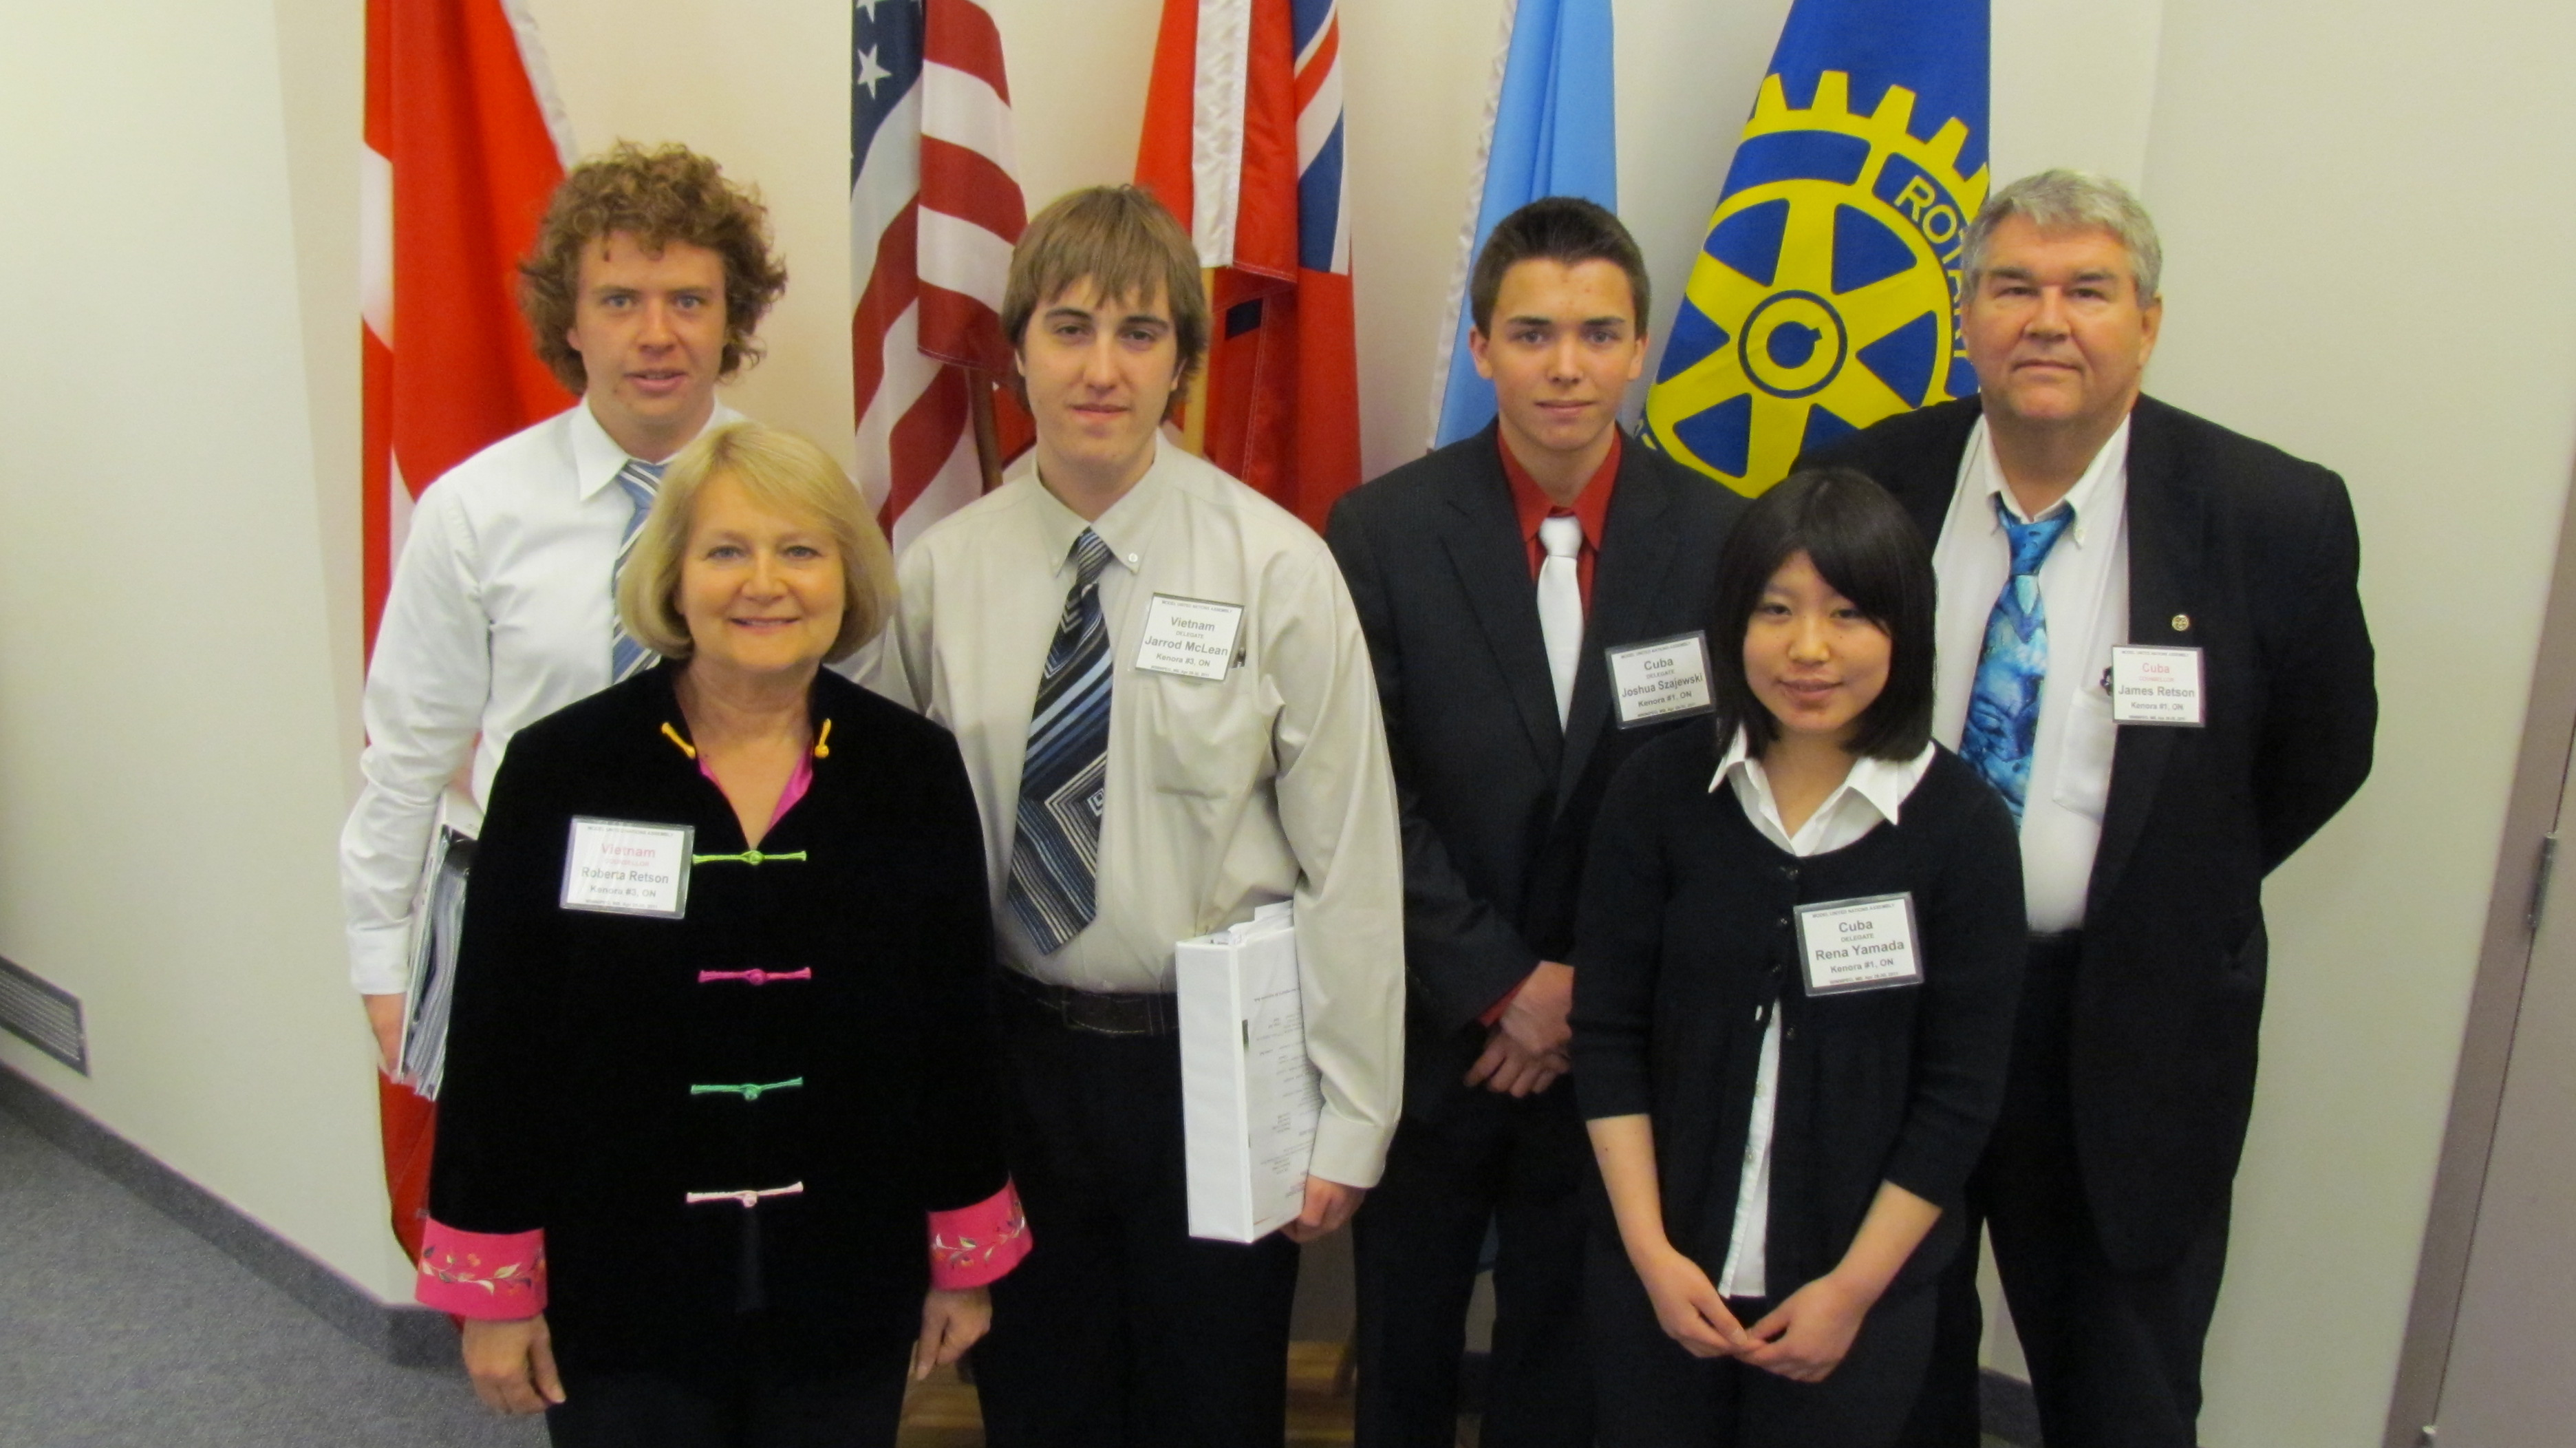 The Model United Nations was held in Winnipeg on April 28-May 1st 2011